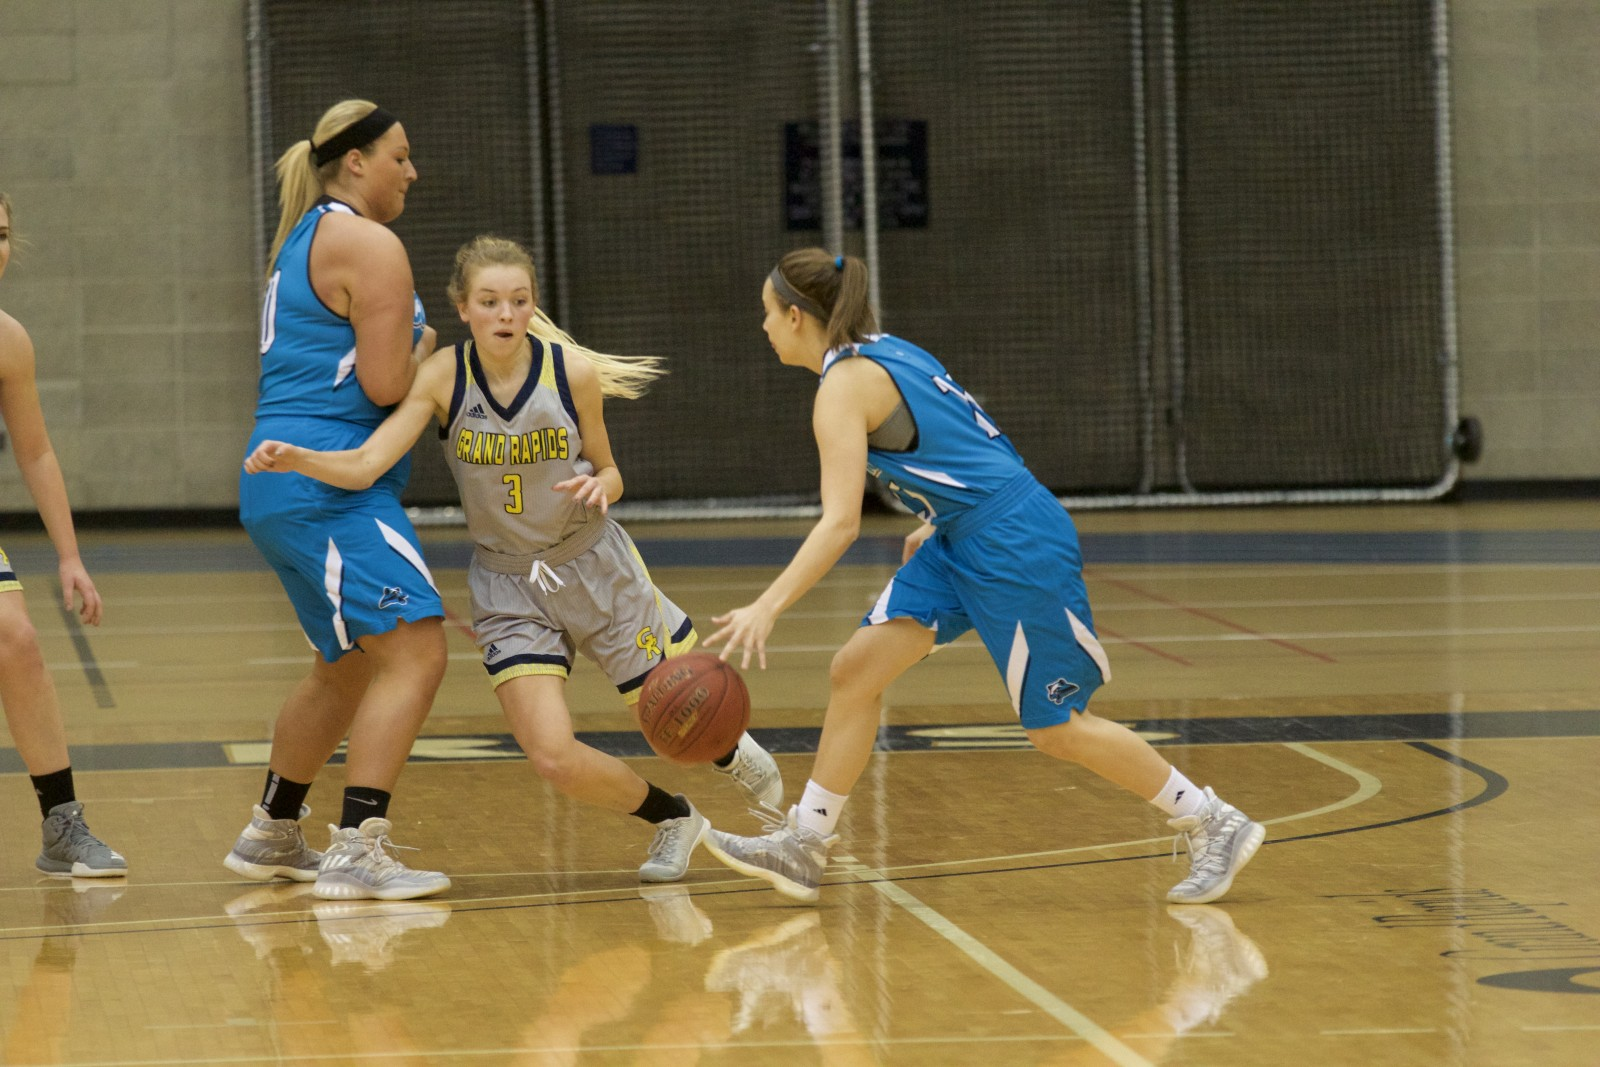 Freshman guard, #3, Claire Flewelling guarding against a KVCC player as she's getting screened.